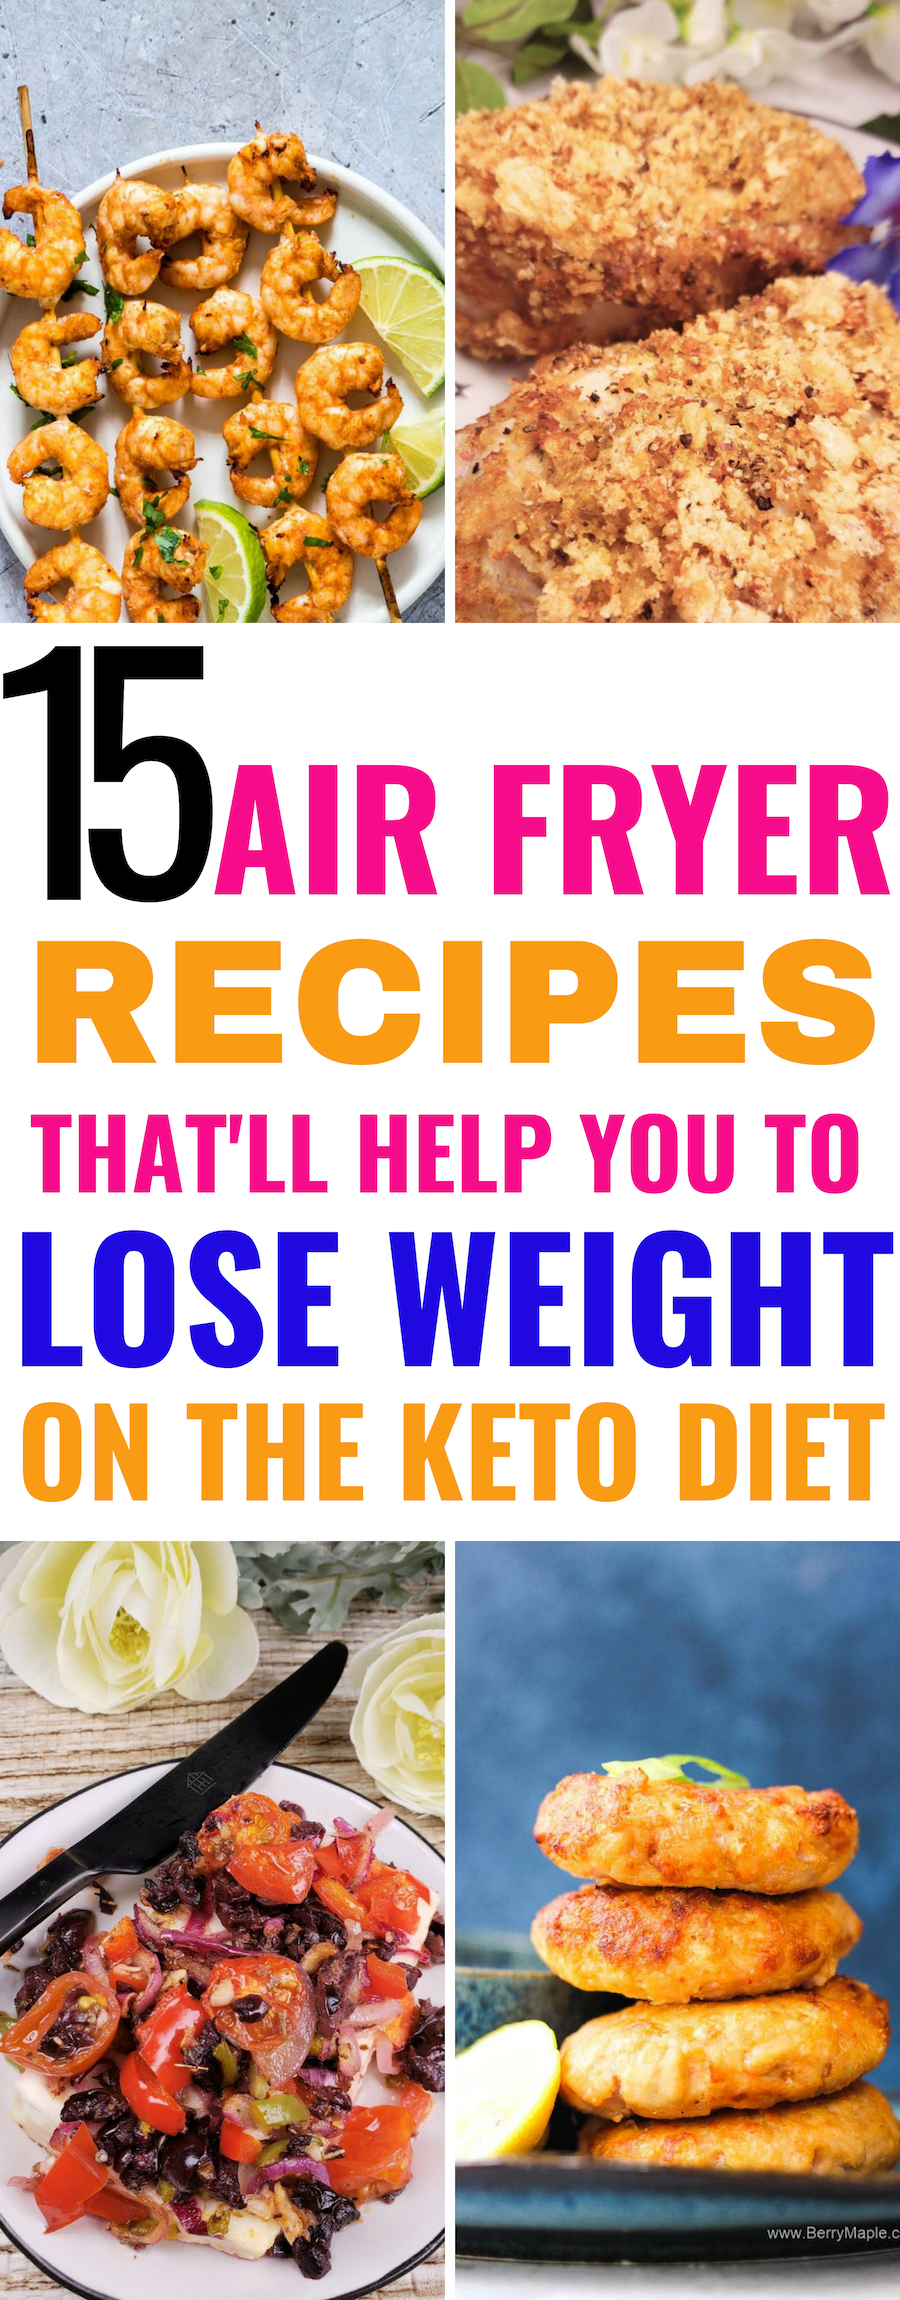 15 Keto Air Fryer Recipes That Are Quick, Easy & Healthy ...